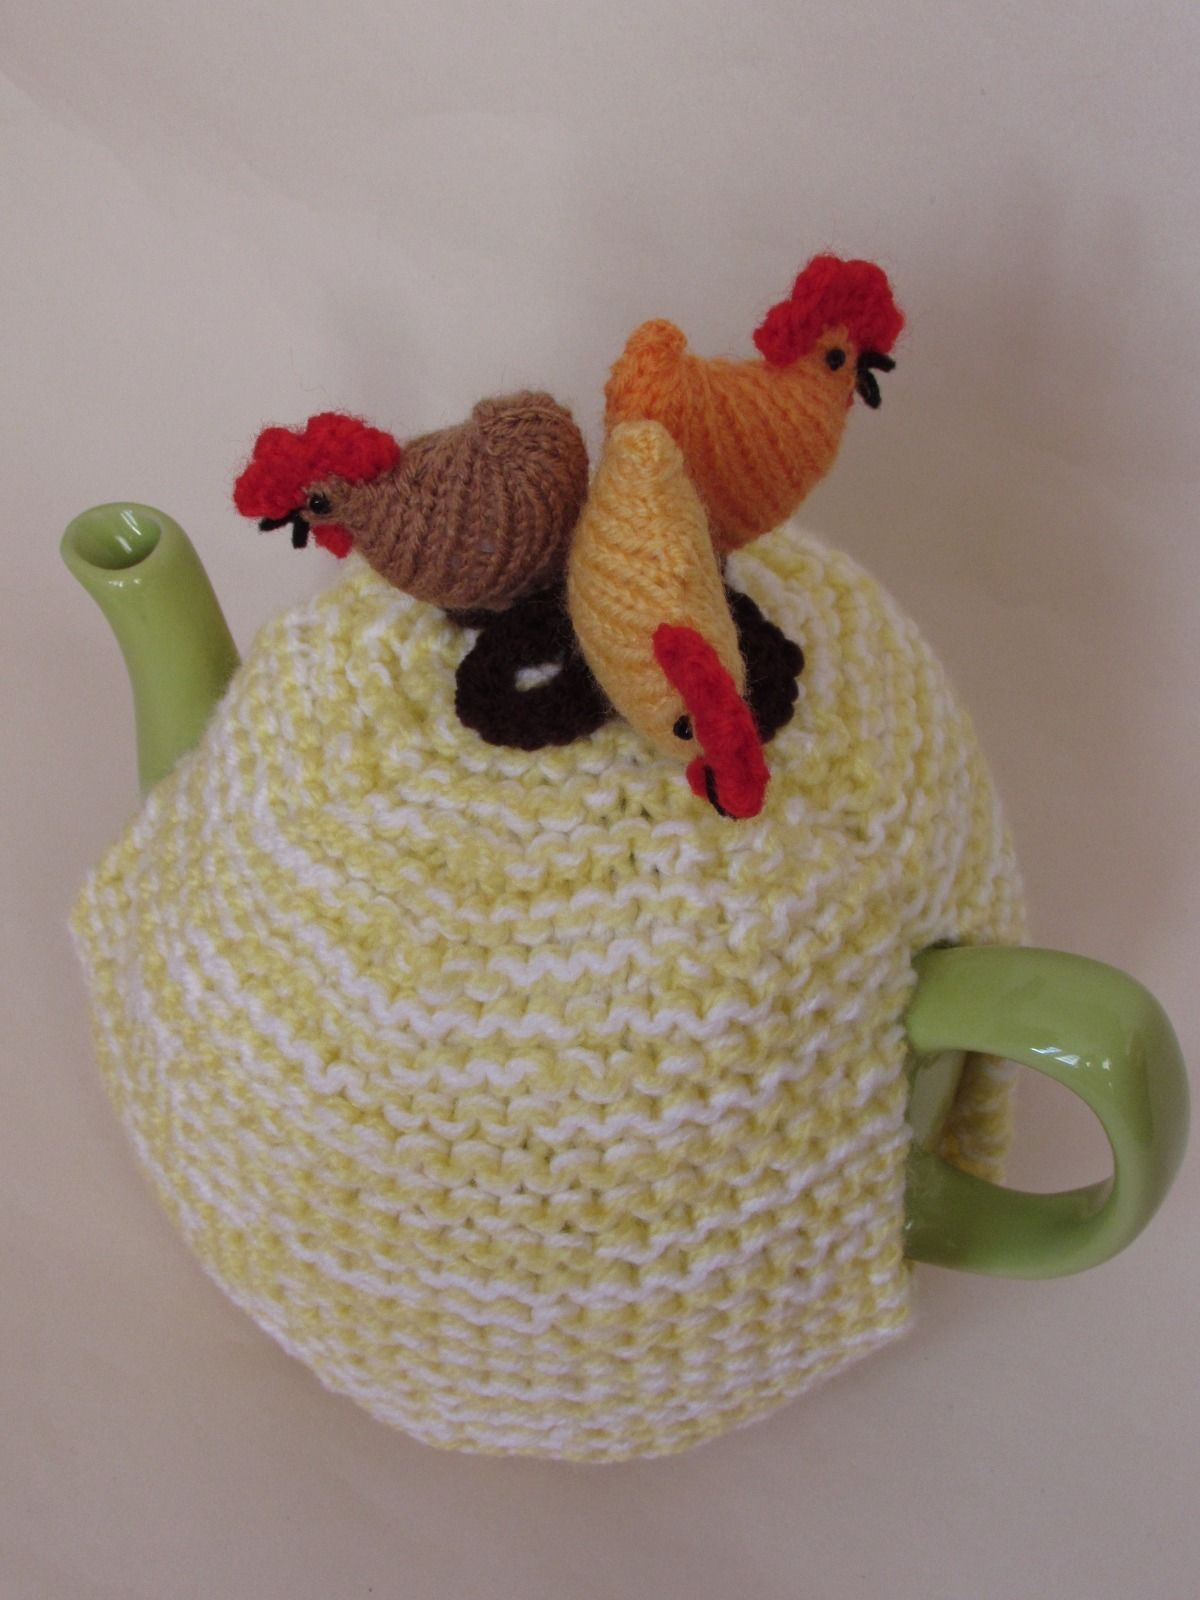 TeaCosyFolk Chickens Tea Cosy and Egg Cosy Knitting Pattern to knit ...